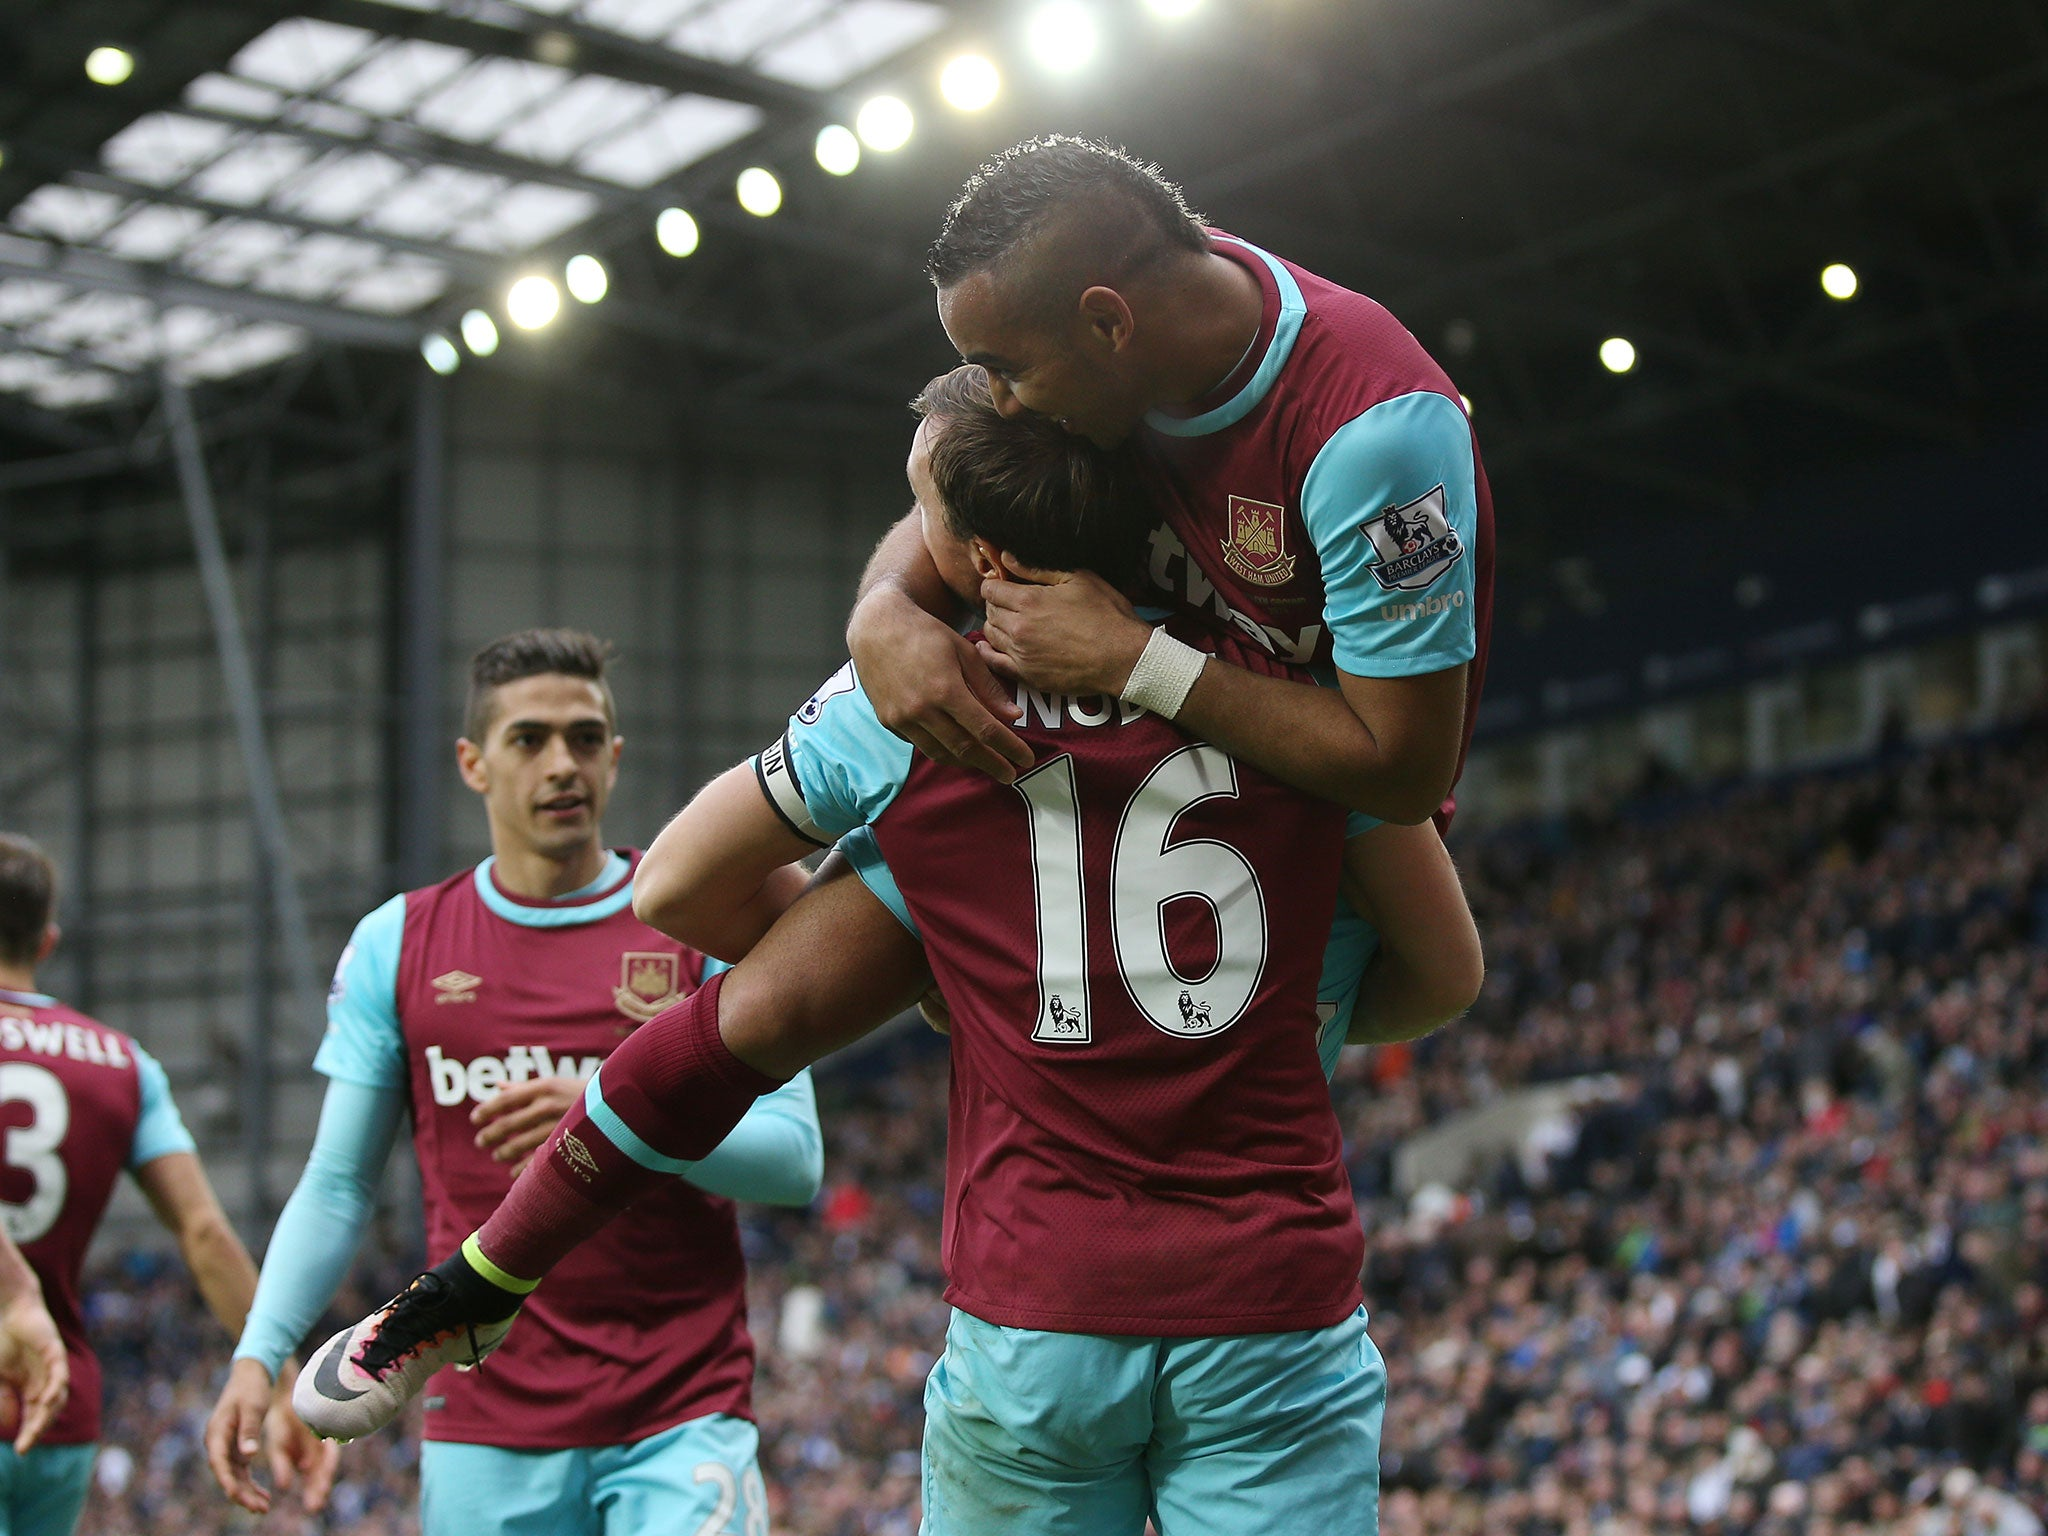 West Ham beat Leicester to be the most profitable Premier League team to bet on this season